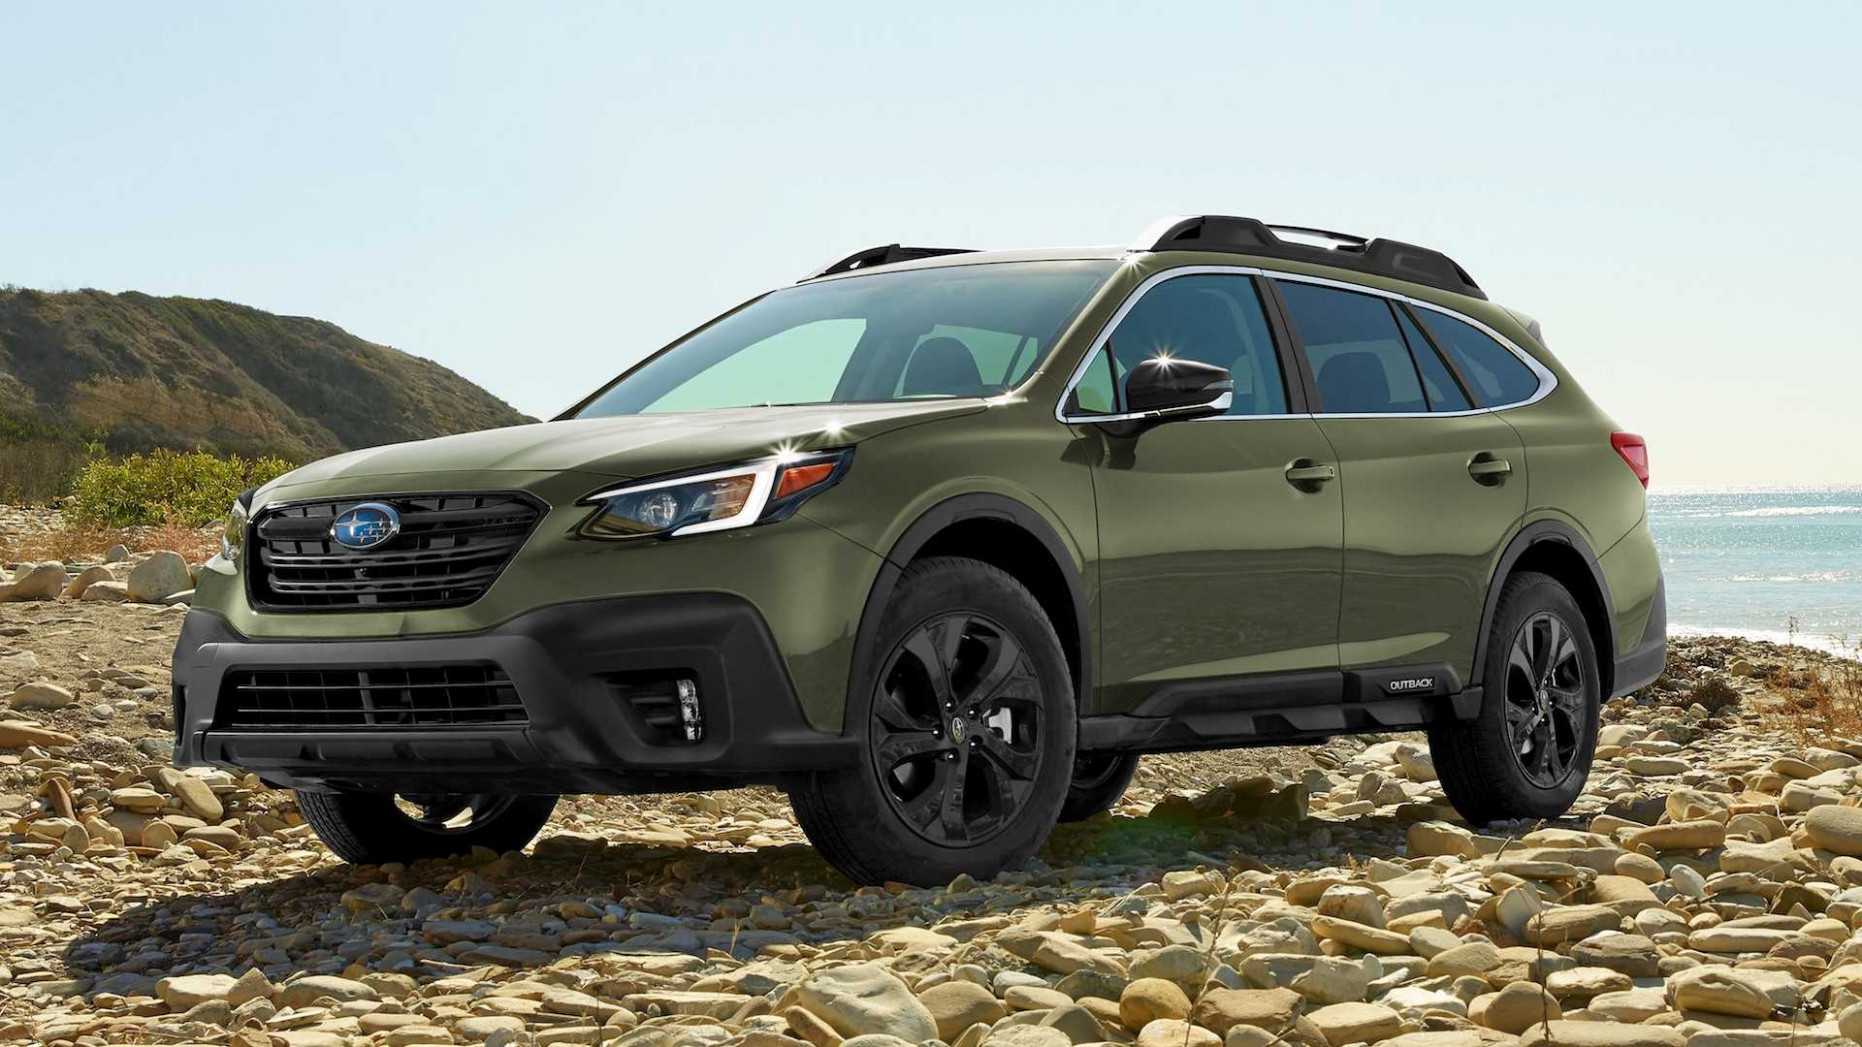 Most Expensive 10 Subaru Outback Costs $10,10 - subaru outback accessories 2020